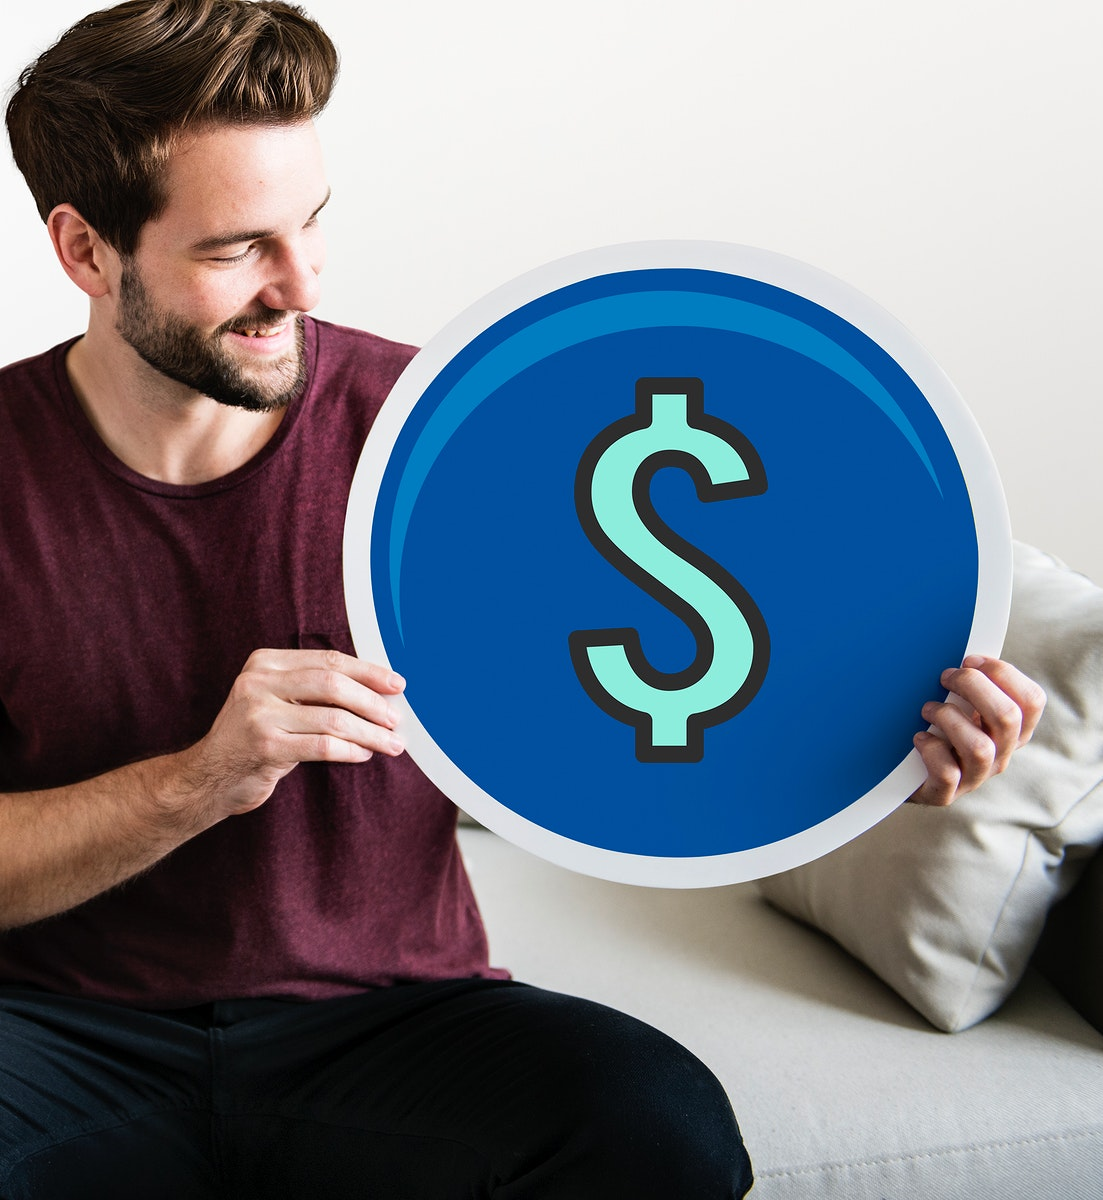 Young man holding a dollar icon